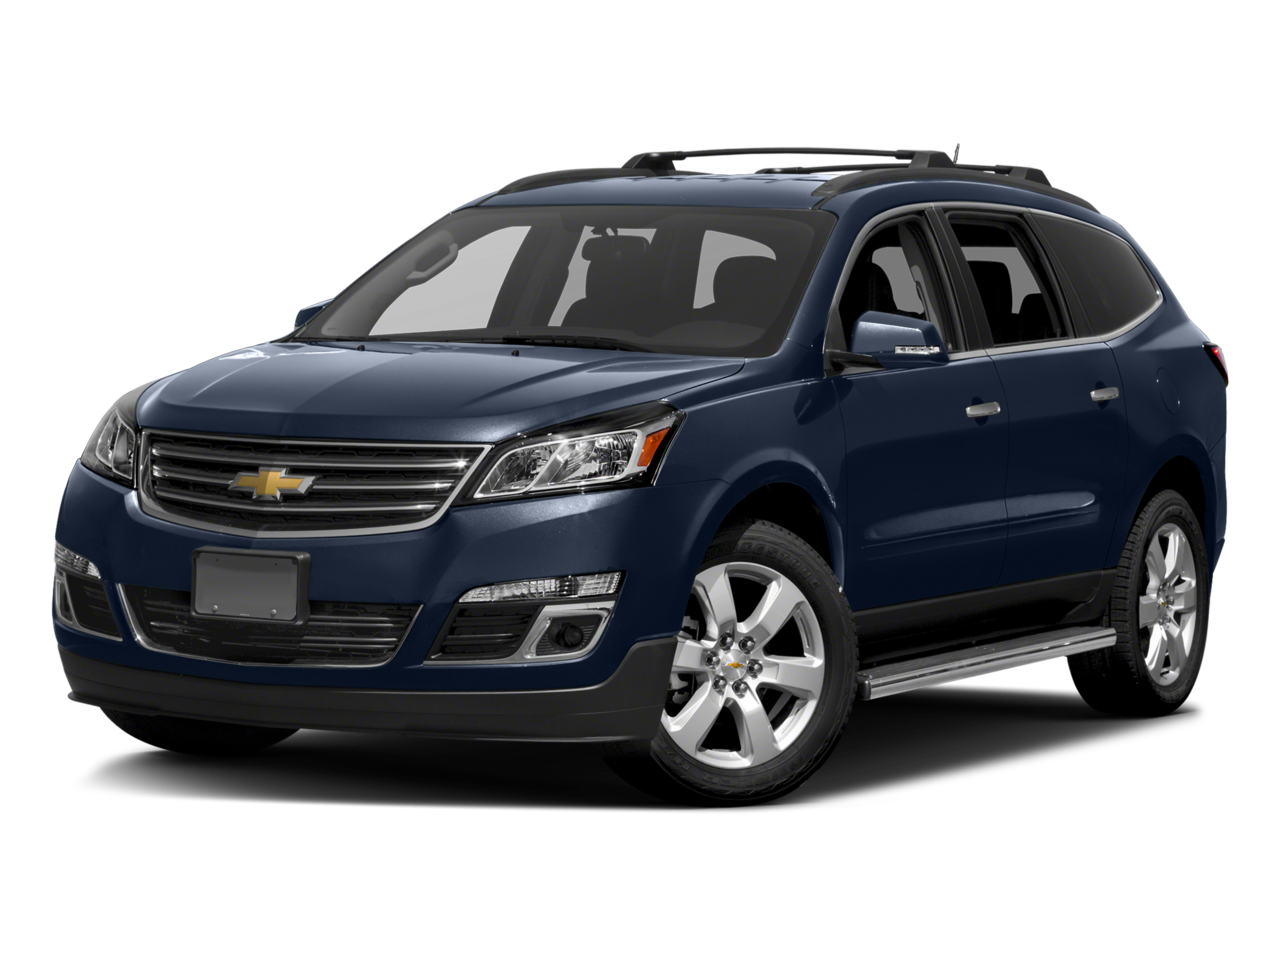 2017 Chevy Traverse